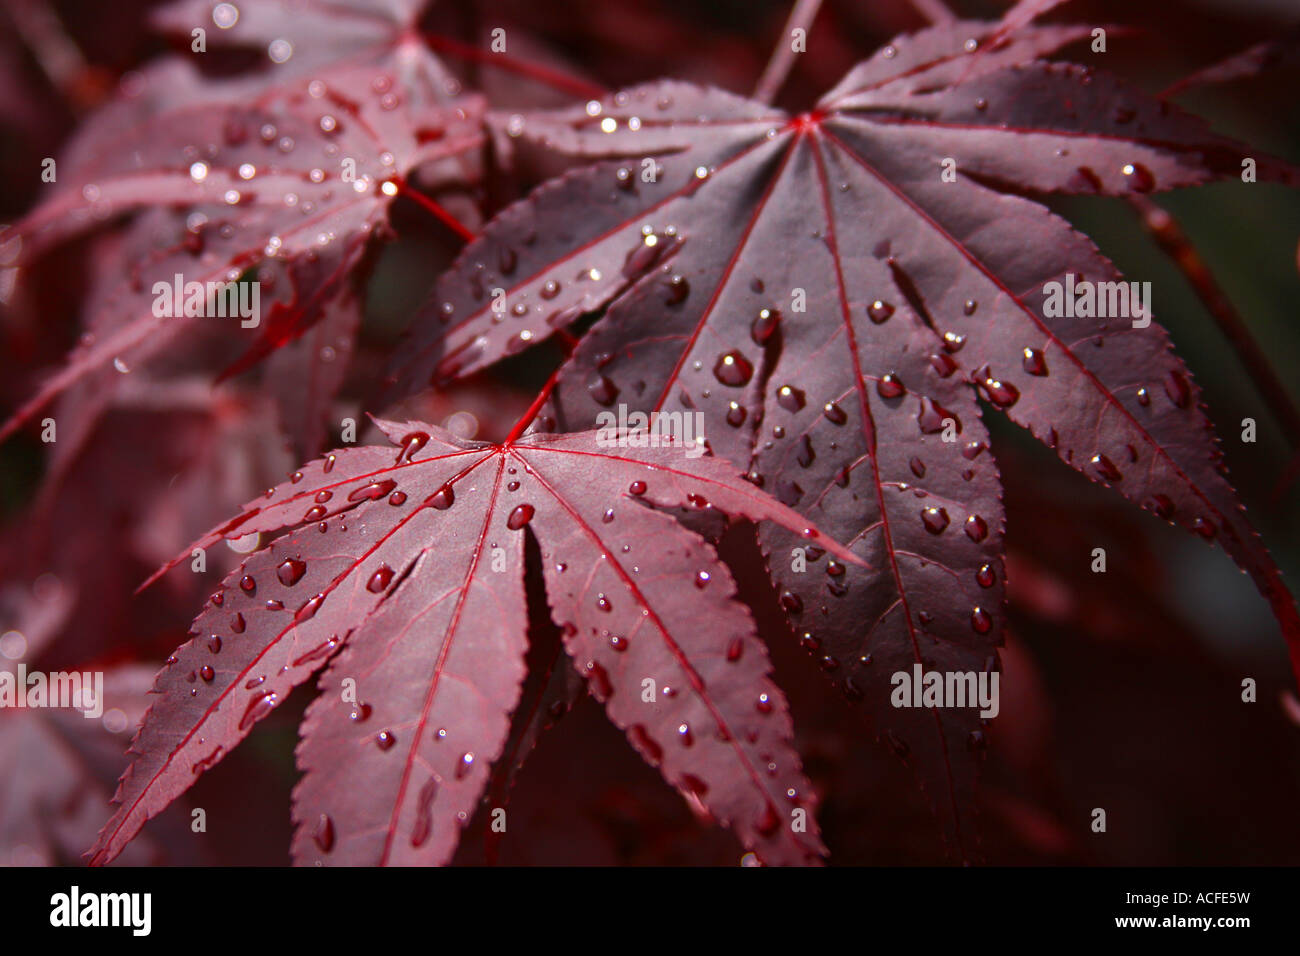 Fall Leaf Wallpaper For Mobile Raindrops On Dark Red Maple Leaves After Rain Stock Photo